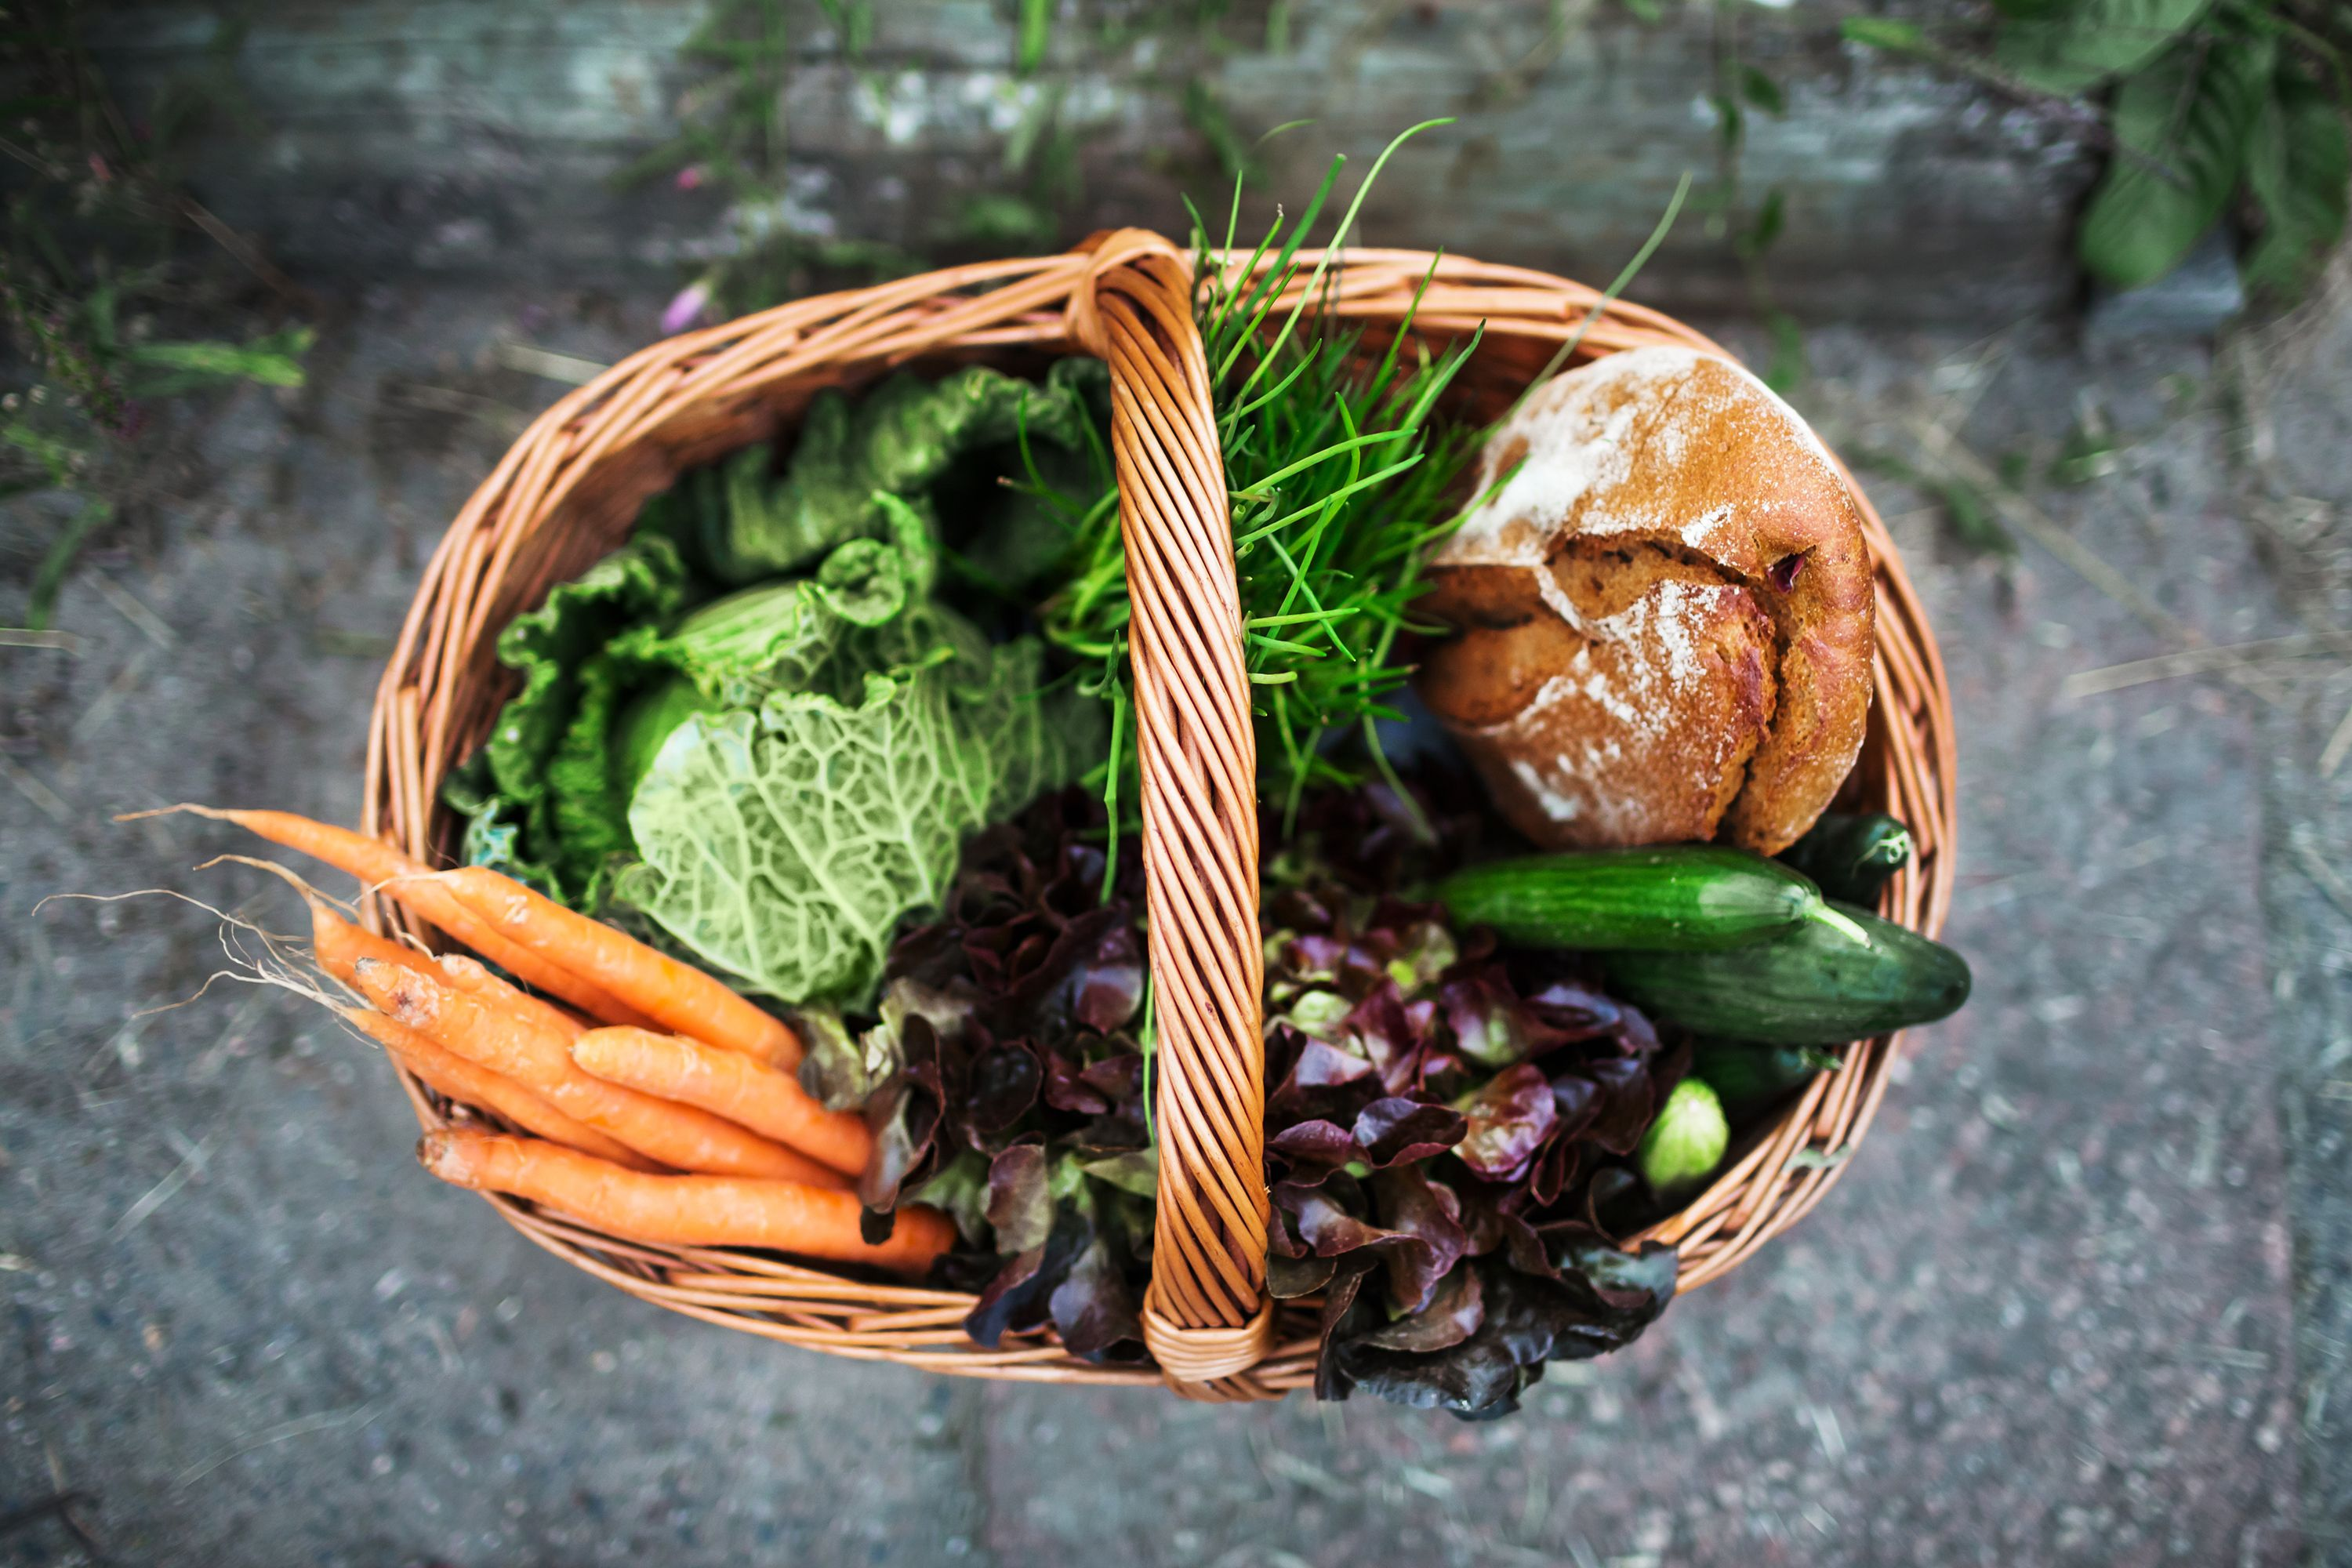 These 5 foods help slow the ageing process, claims dietician